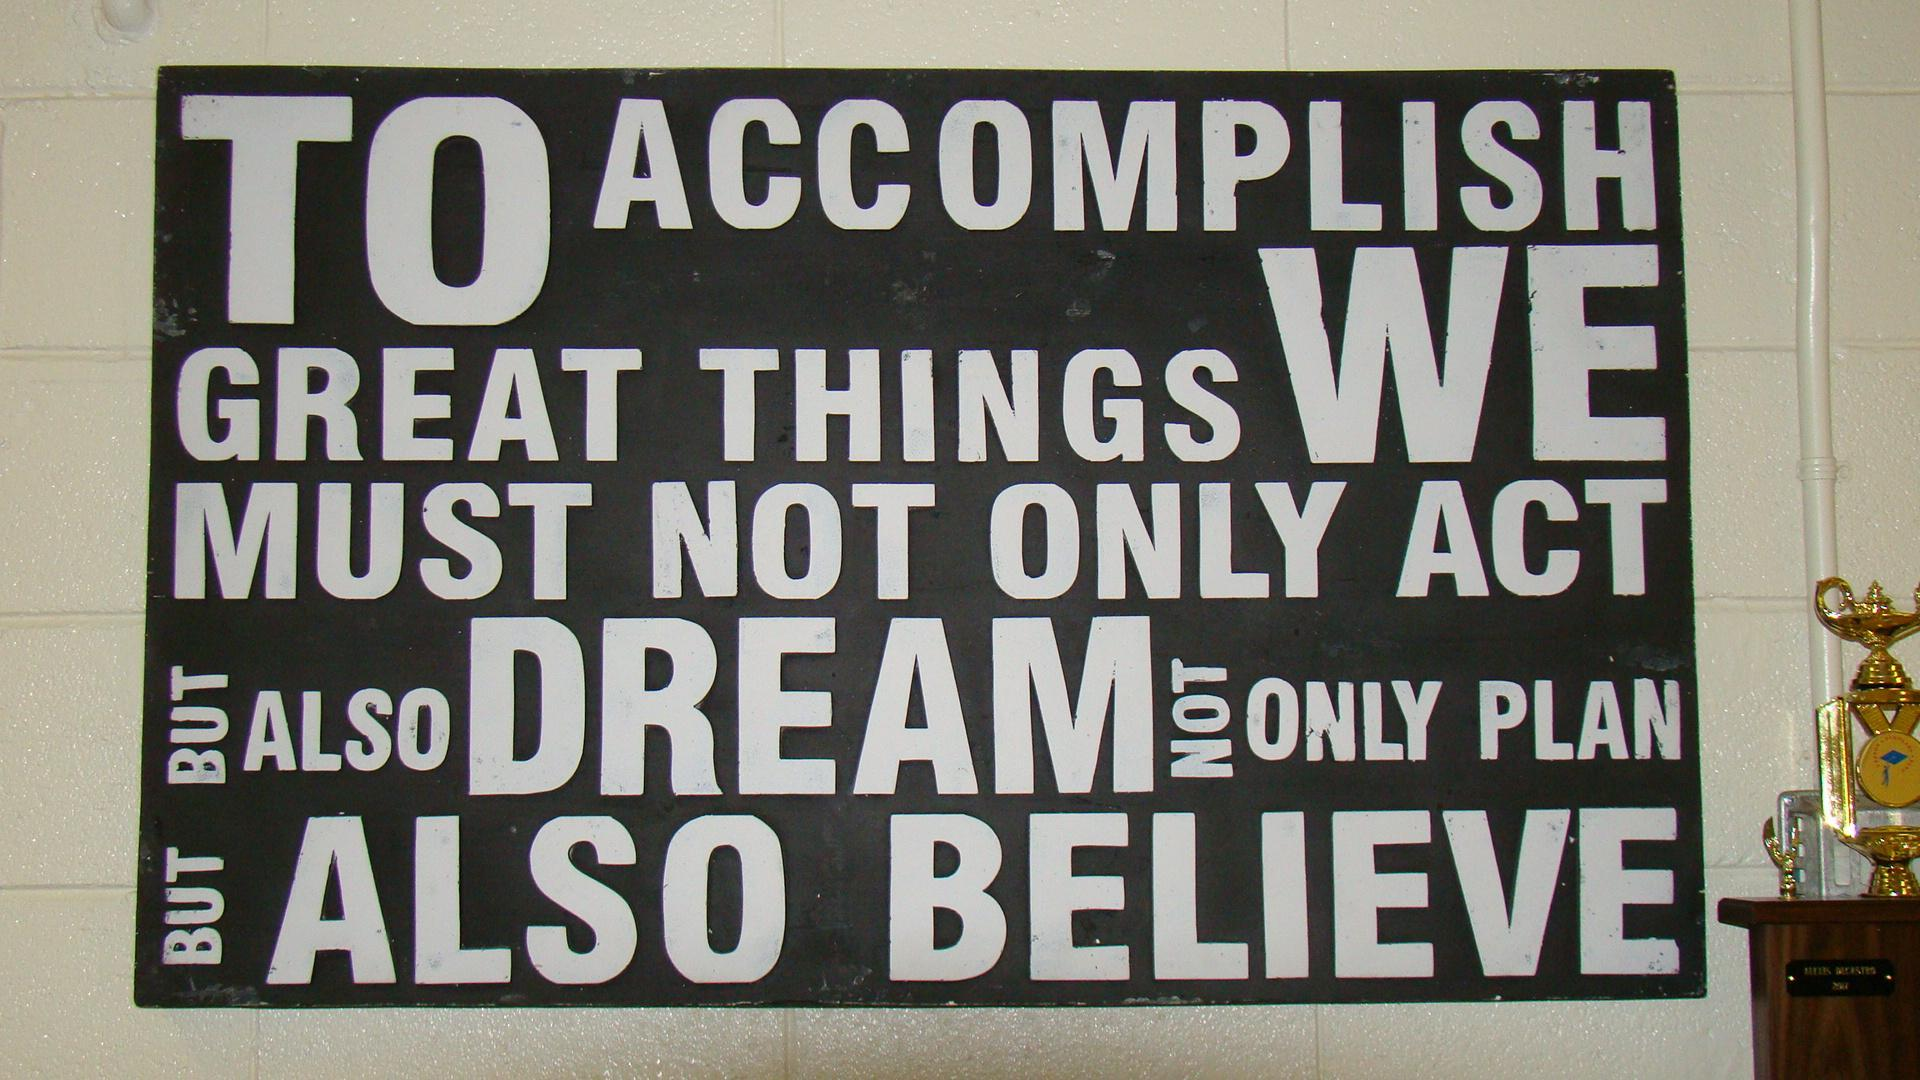 To accomplish great things we must not only act but also dream not only plan but also believe.